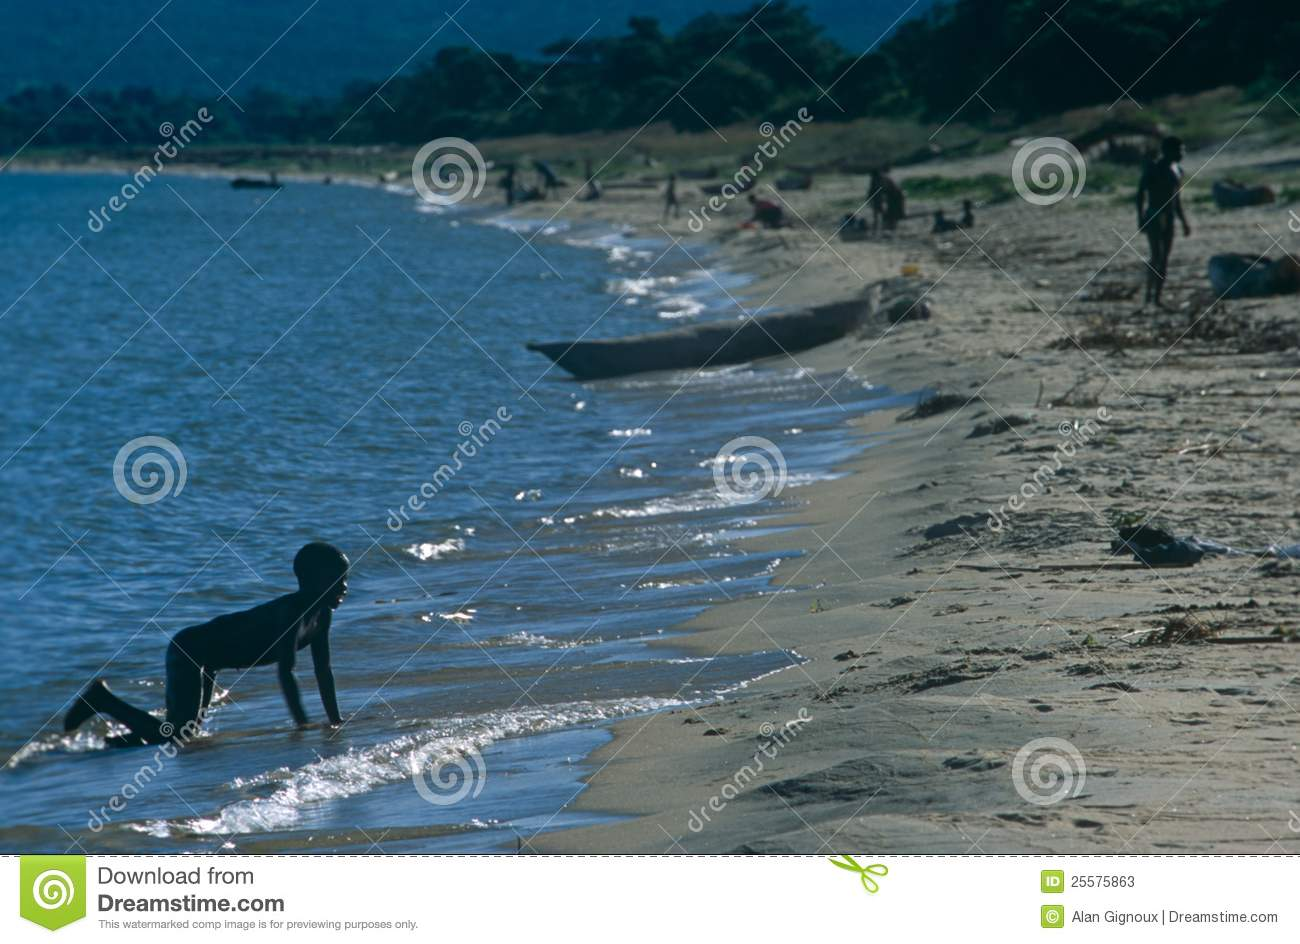 child-playing-beach-lake-malawi-25575863[1]